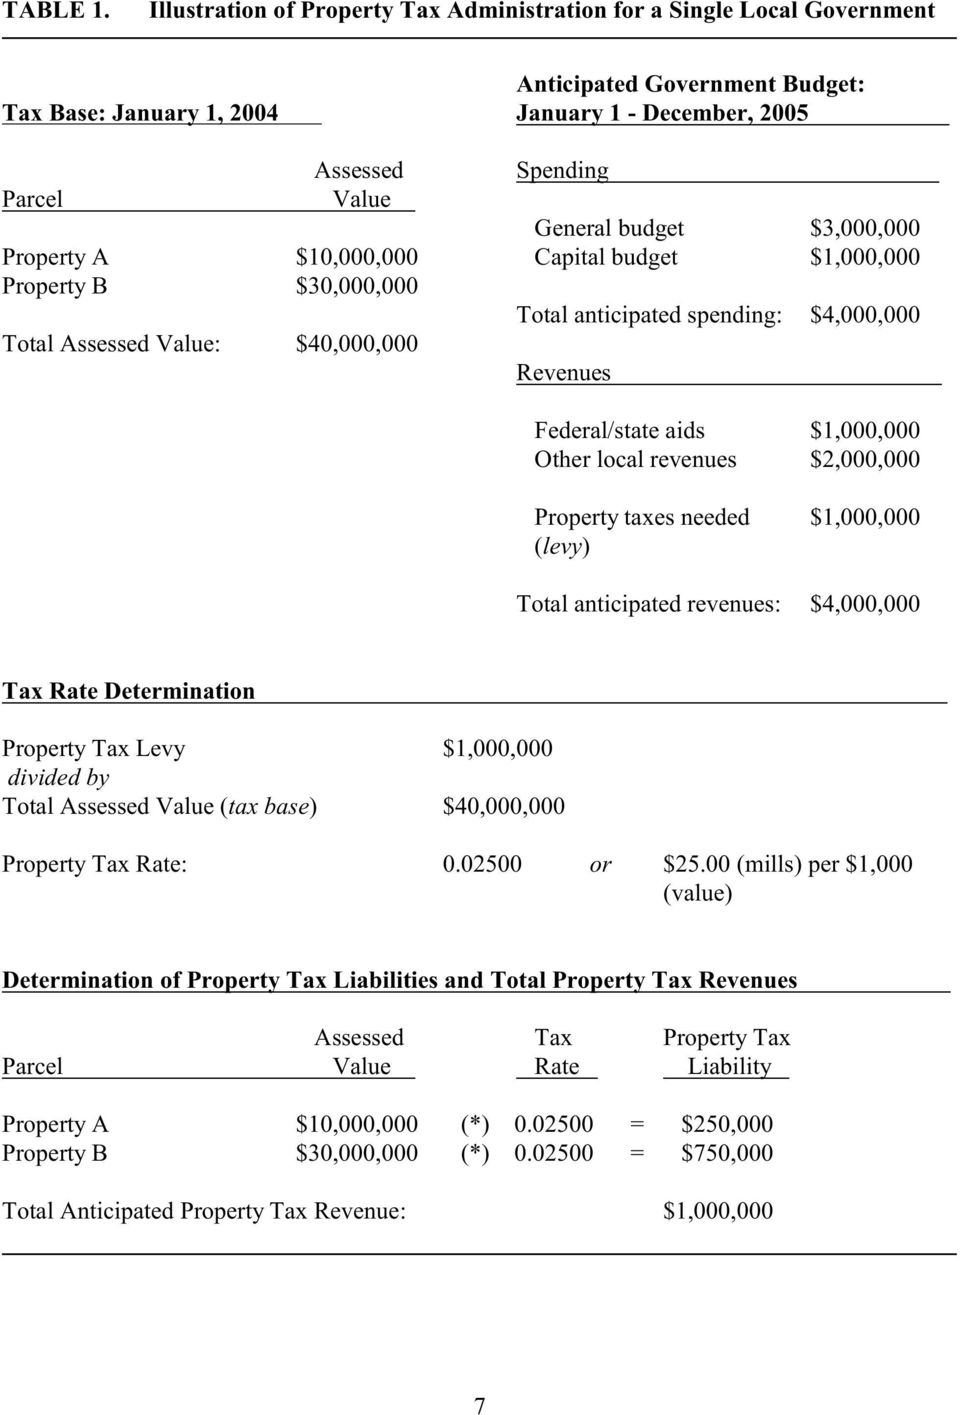 budget $3,000,000 Property A $10,000,000 Capital budget $1,000,000 Property B $30,000,000 Total anticipated spending: $4,000,000 Total Assessed Value: $40,000,000 Revenues Federal/state aids